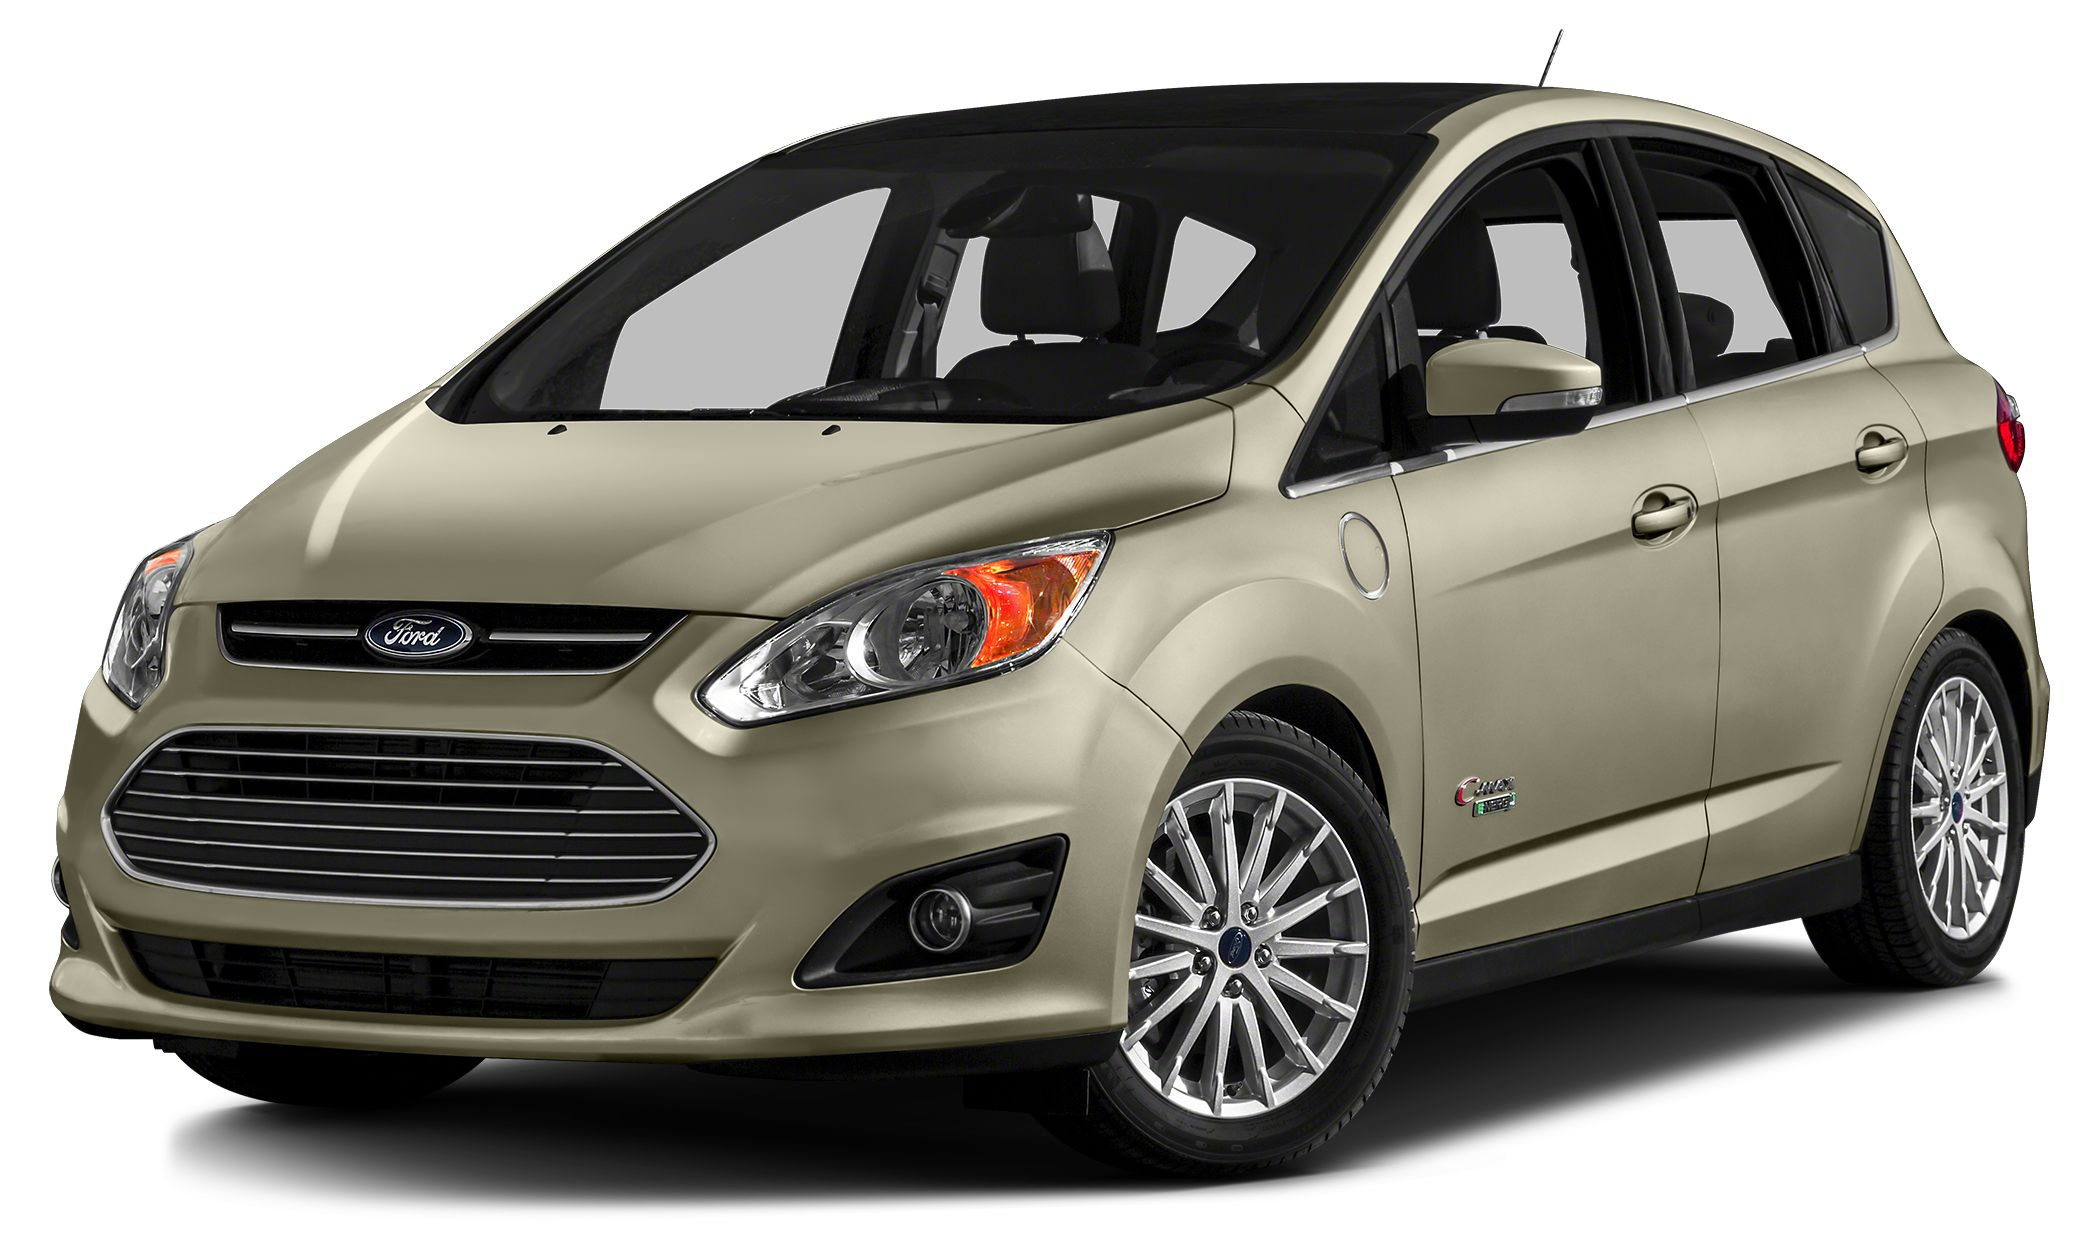 2015 Ford C-Max Energi SEL The C-MAX Hybrid and C-MAX Energi plug-in hybrid - the all-new family o